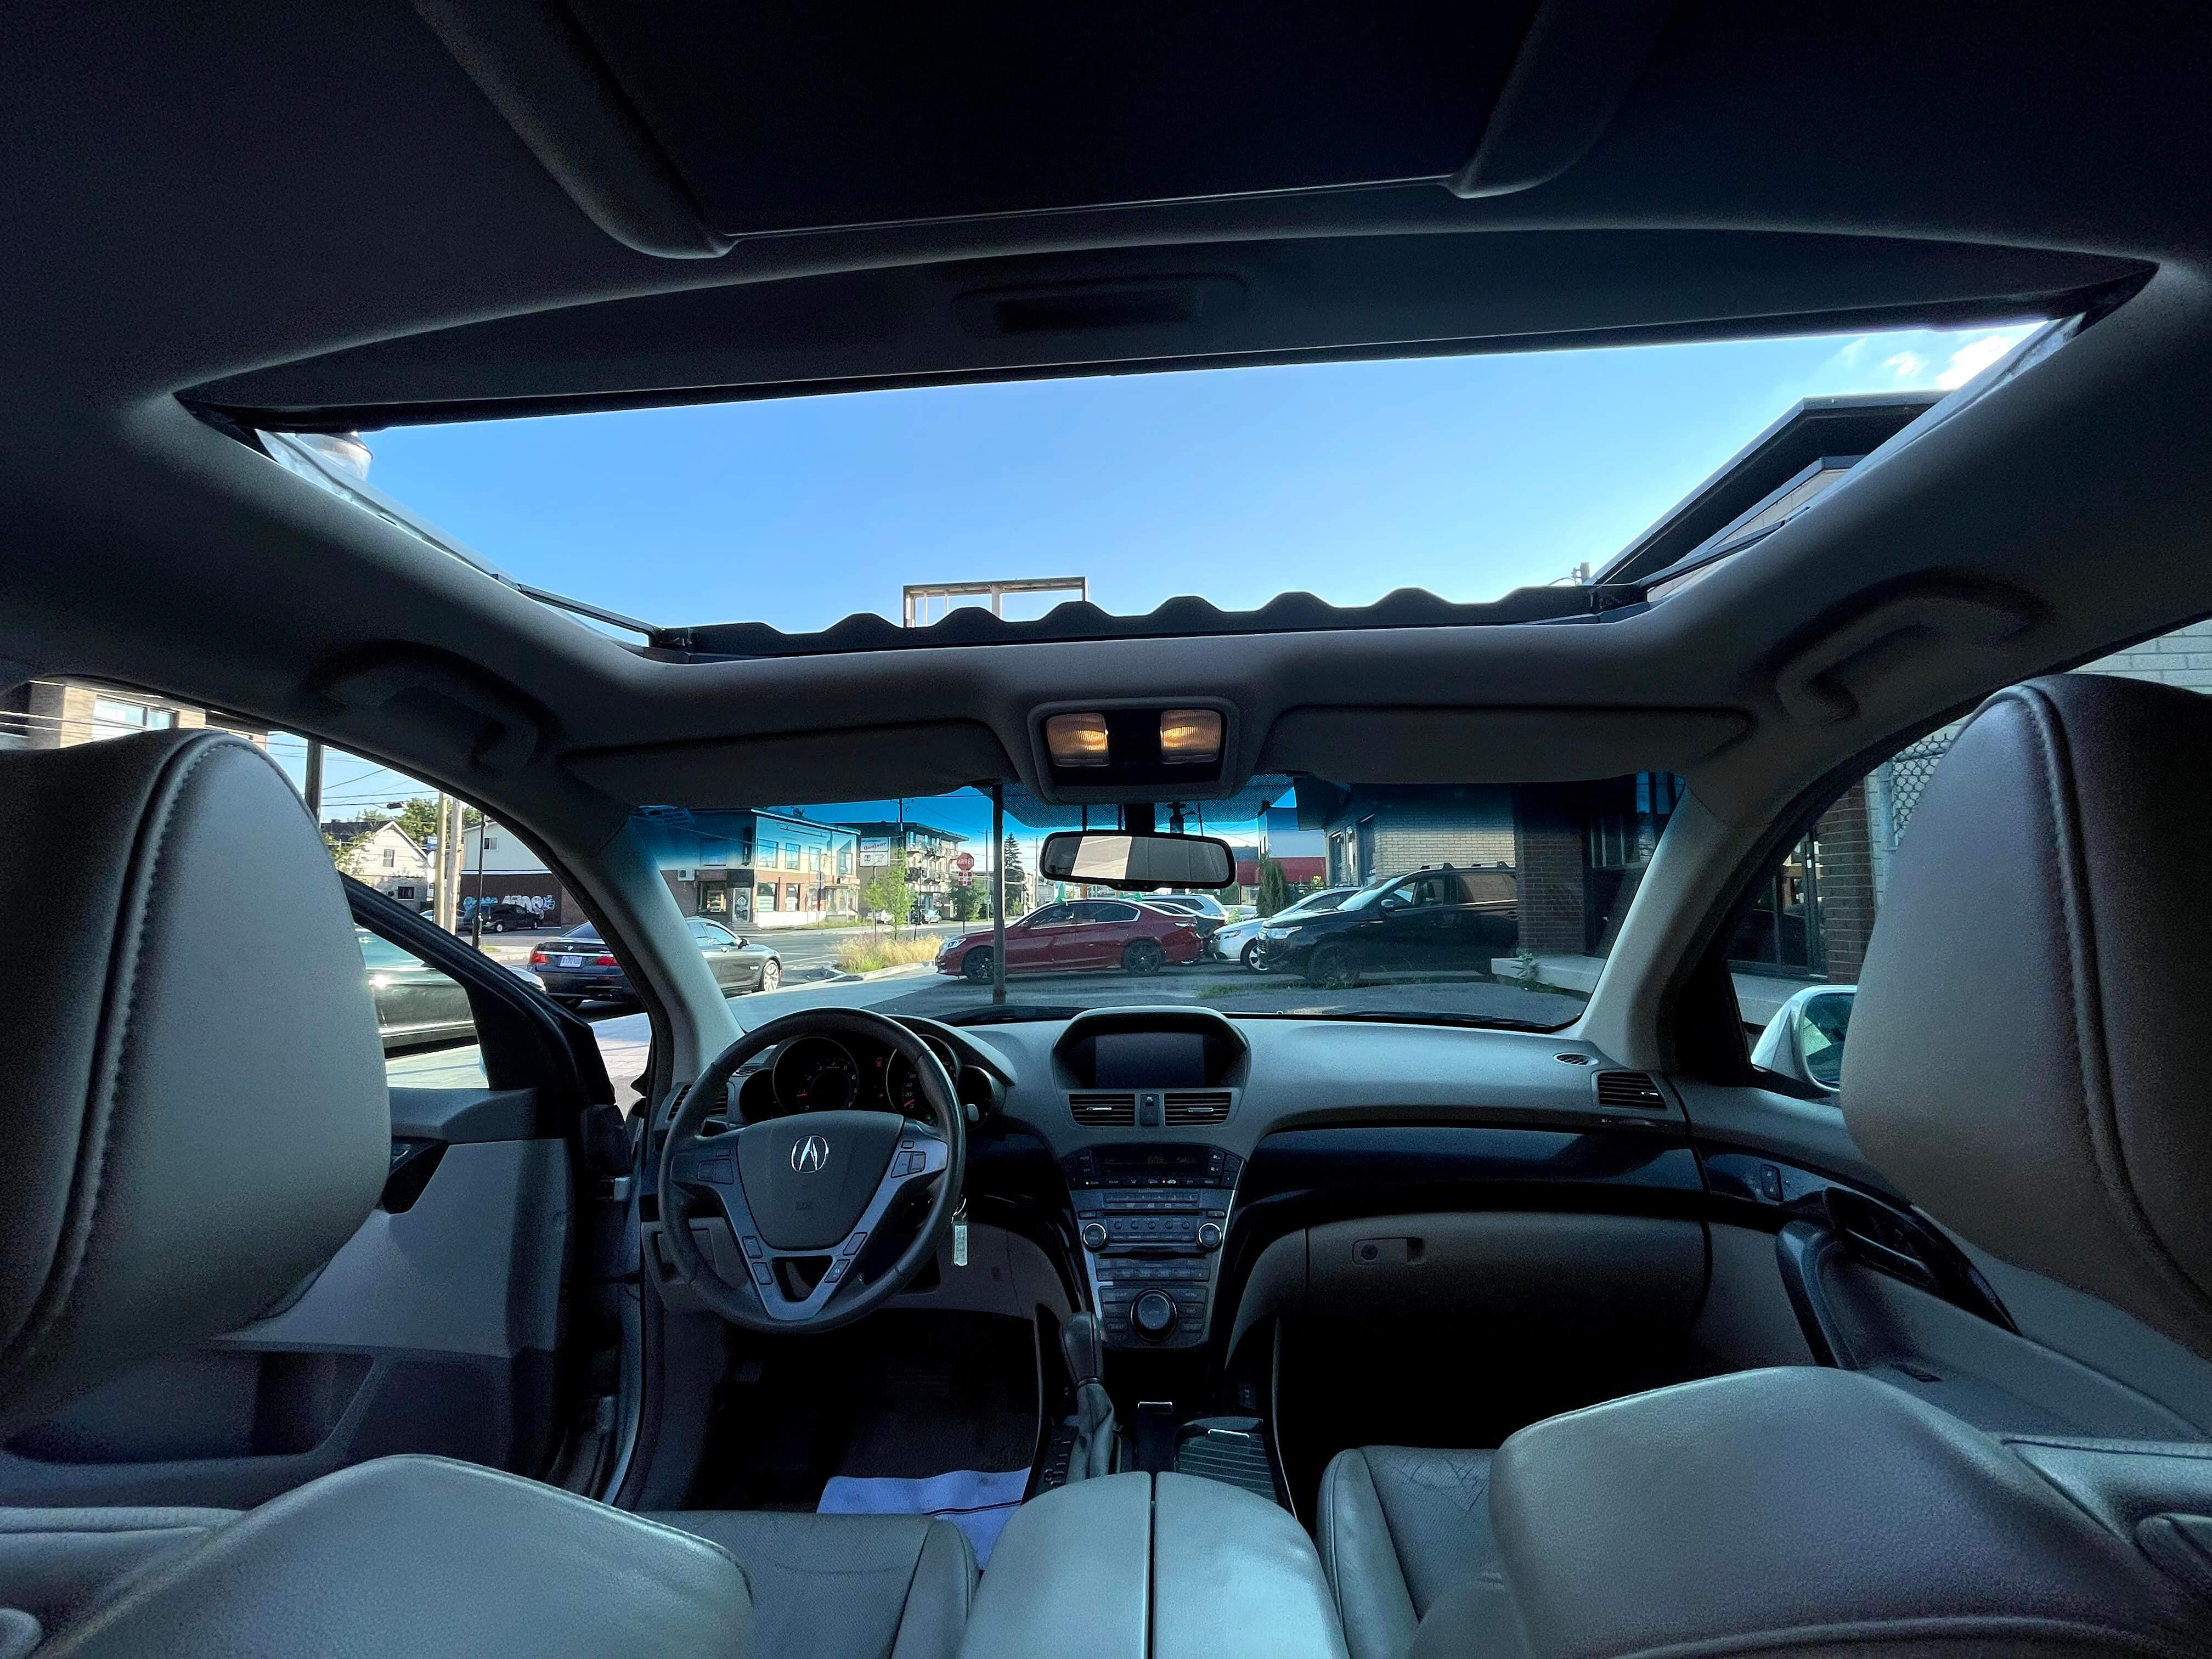 2009 Acura MDX complet